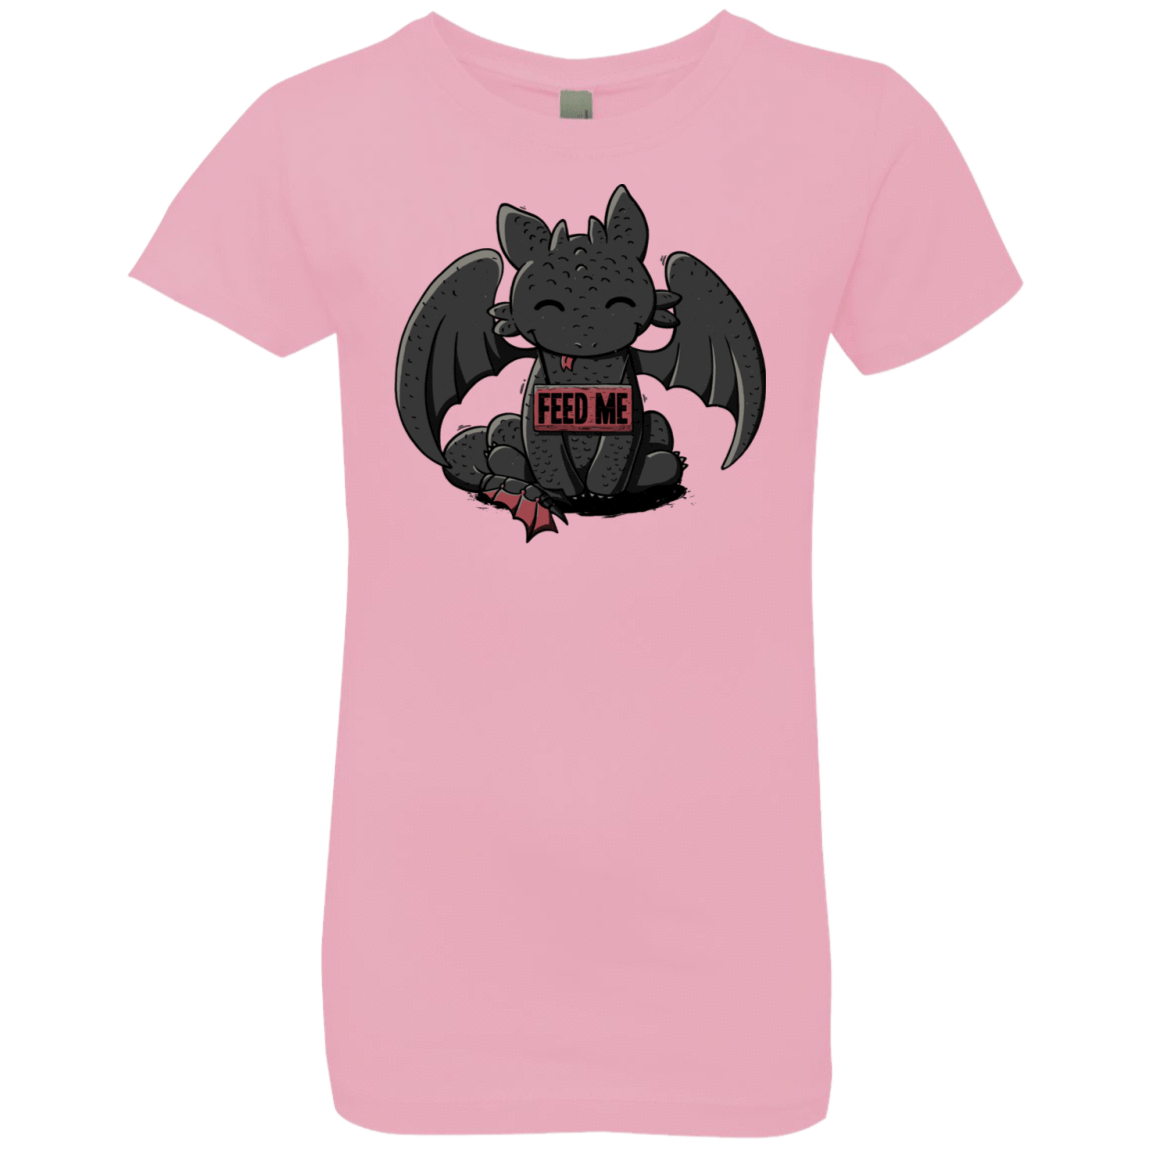 Toothless Feed Me Girls Premium T-Shirt